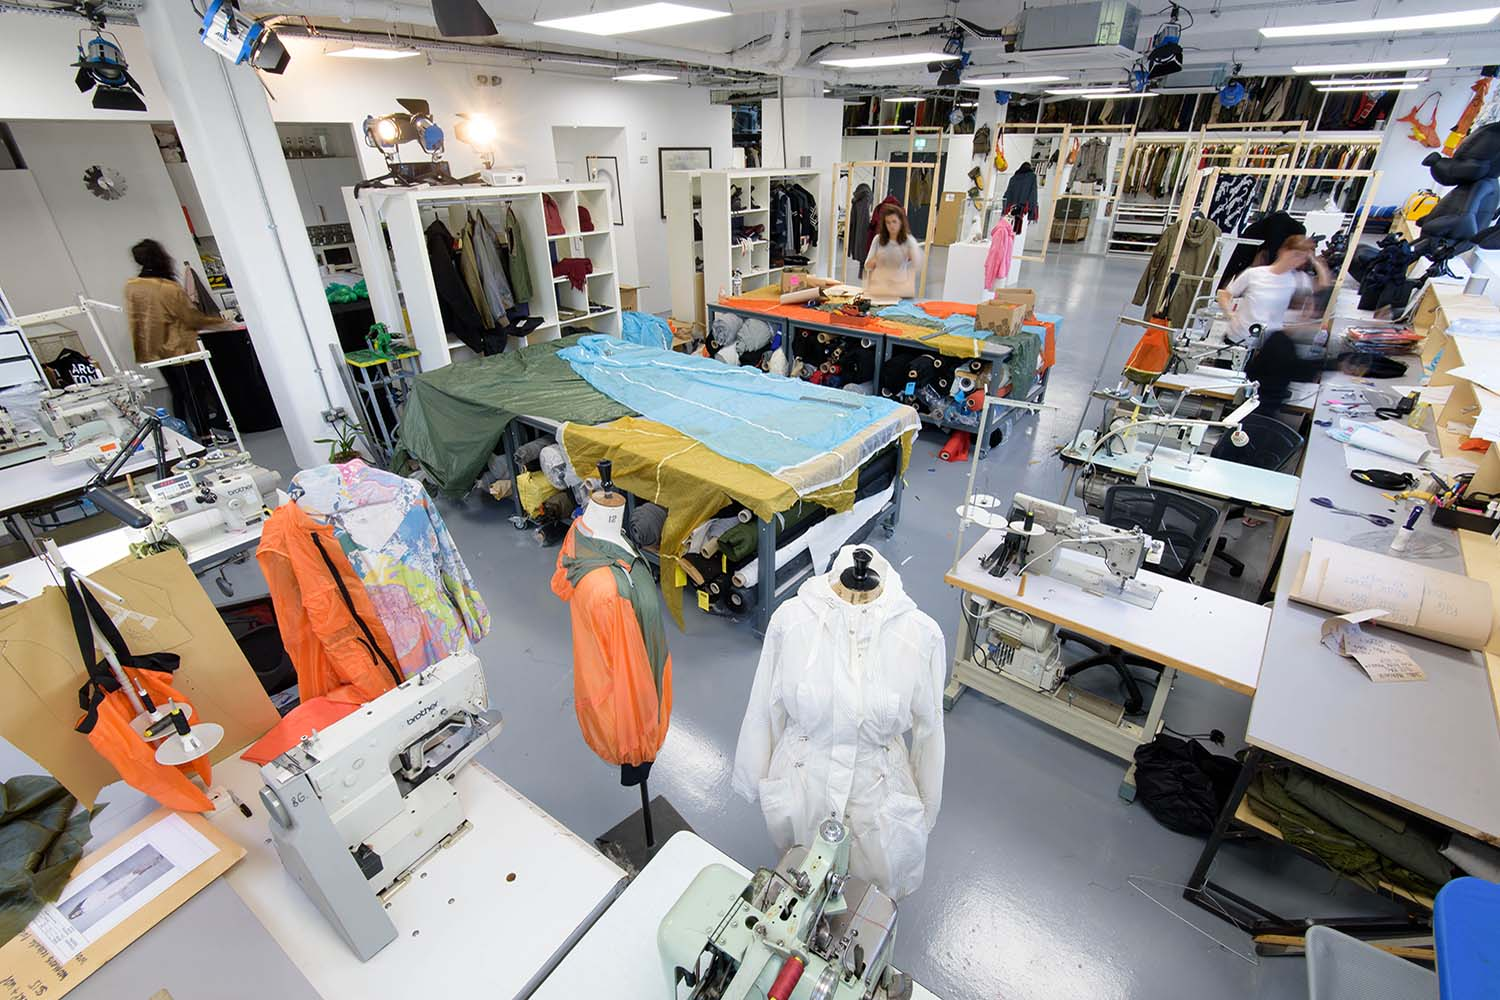 *IMAGE OF THE STUDIO IN LONDON; IMAGE FROM WEBSITE*